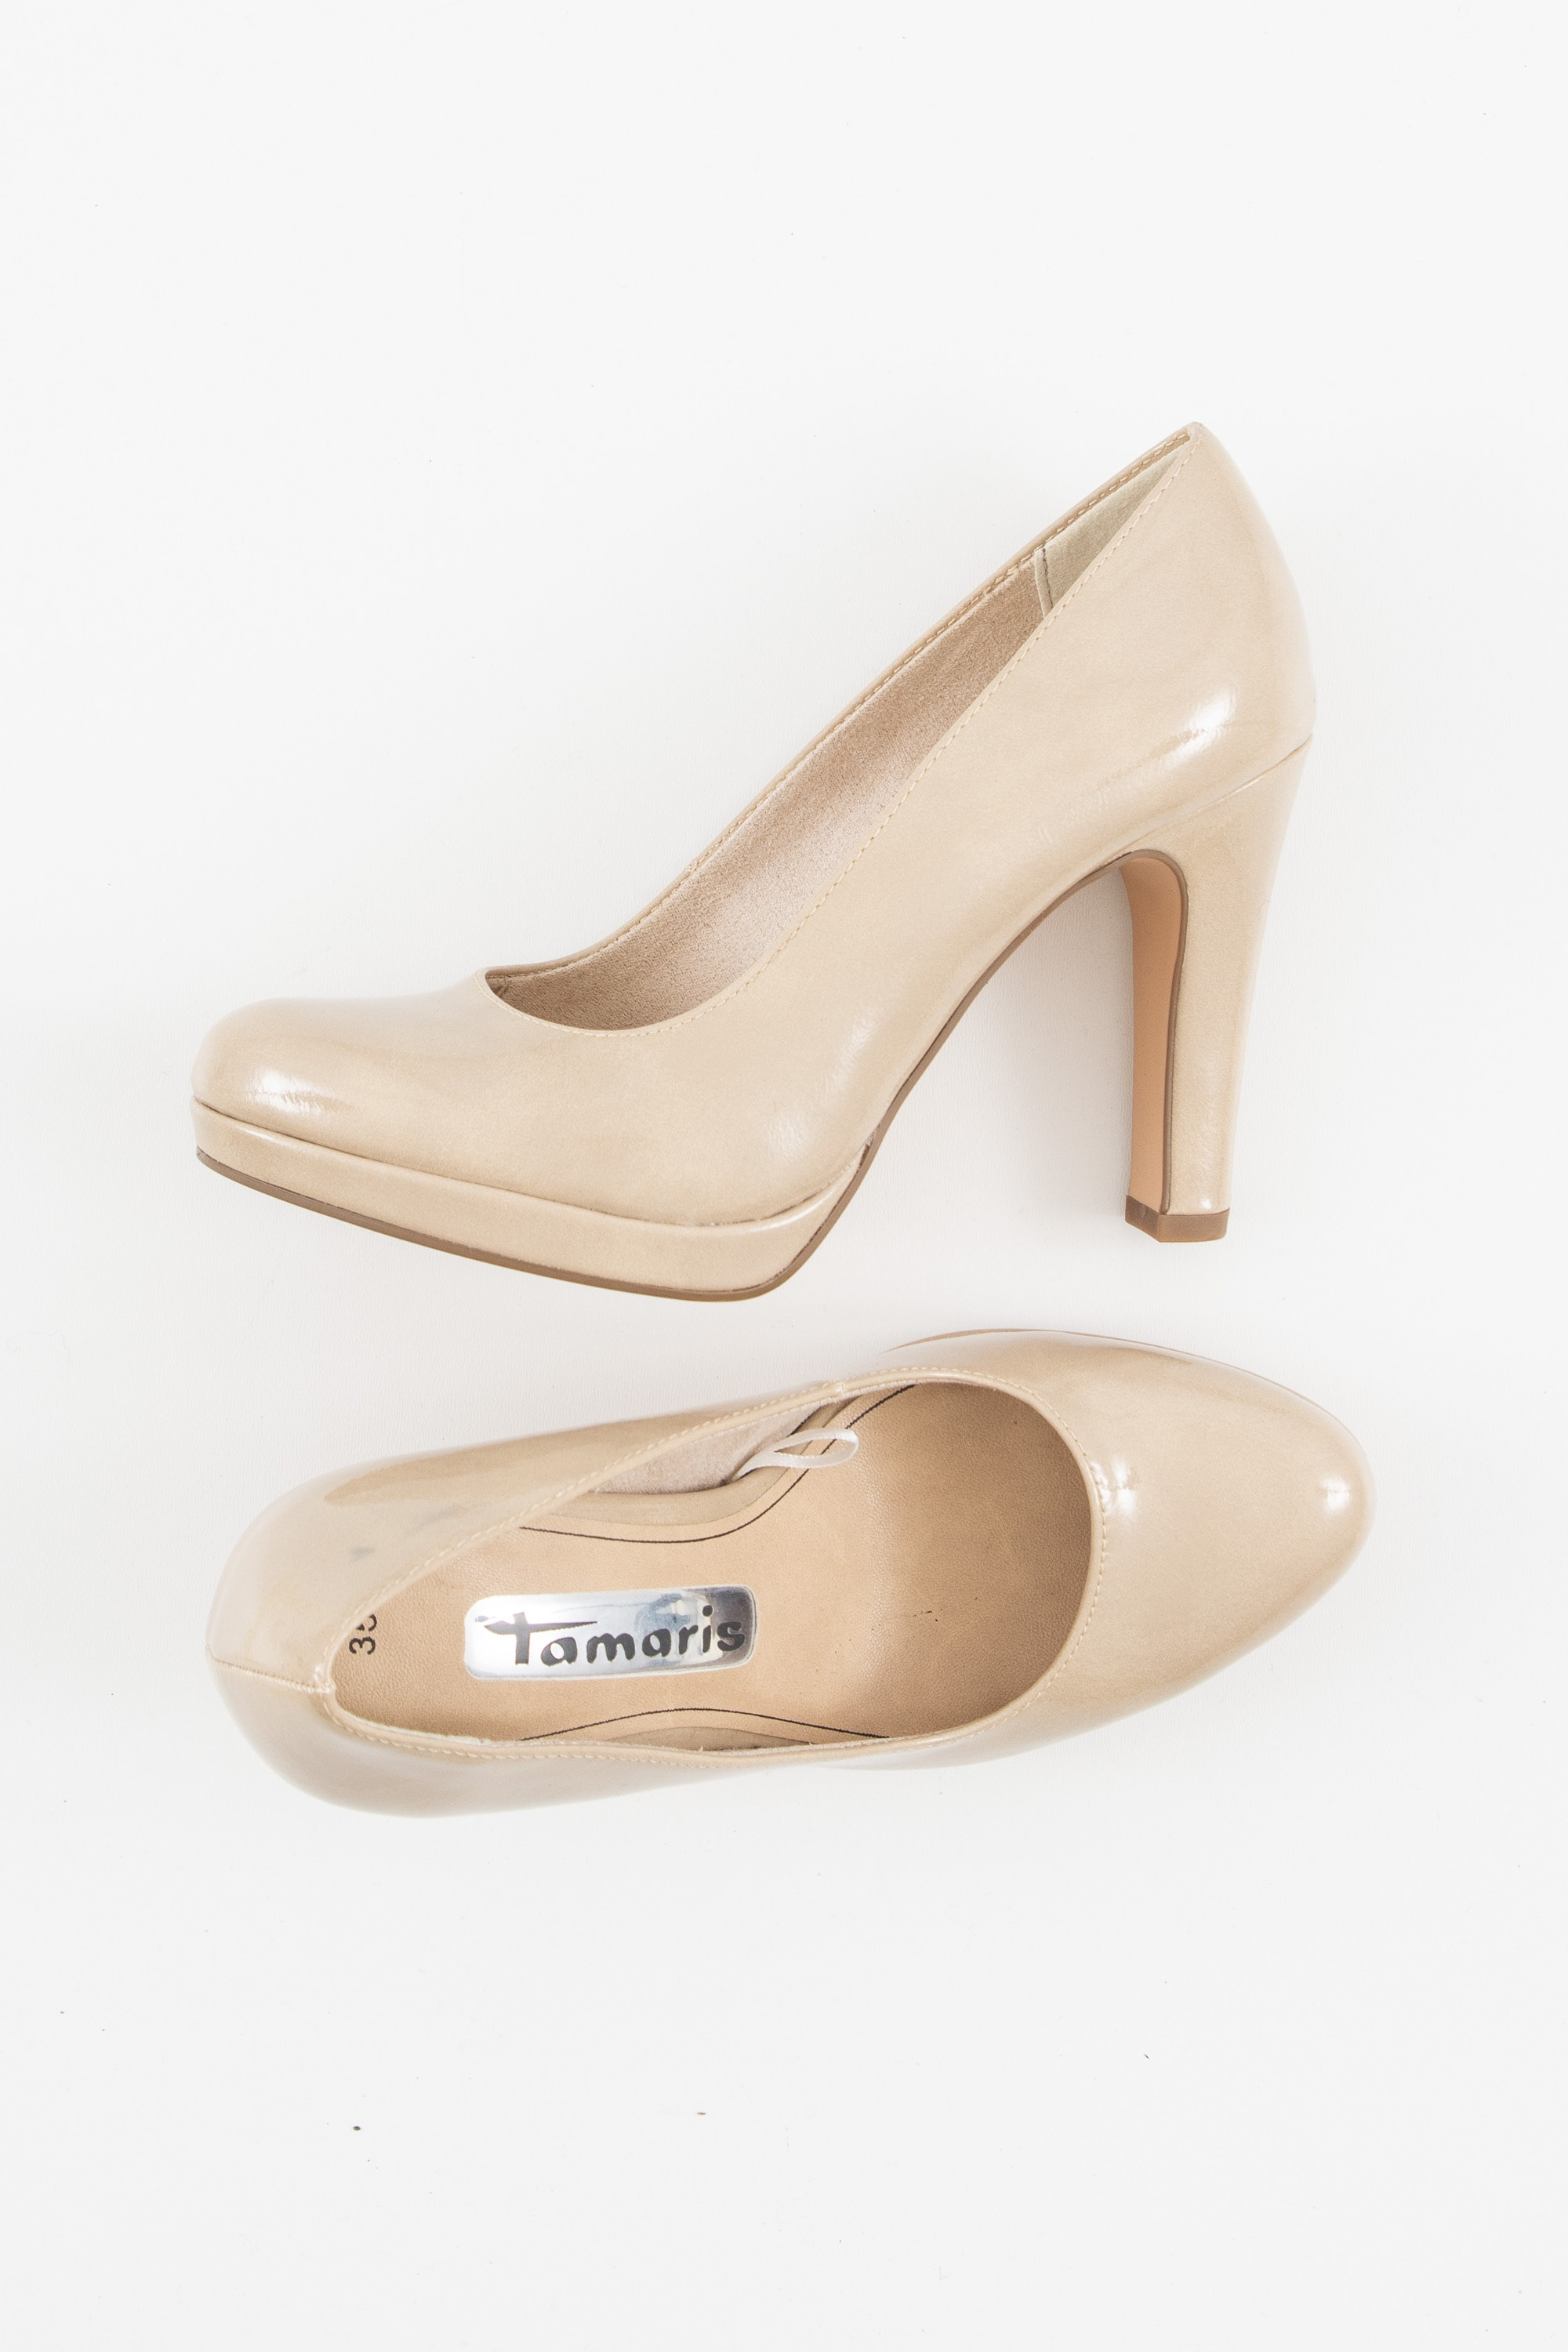 Tamaris Pumps Beige Gr.36